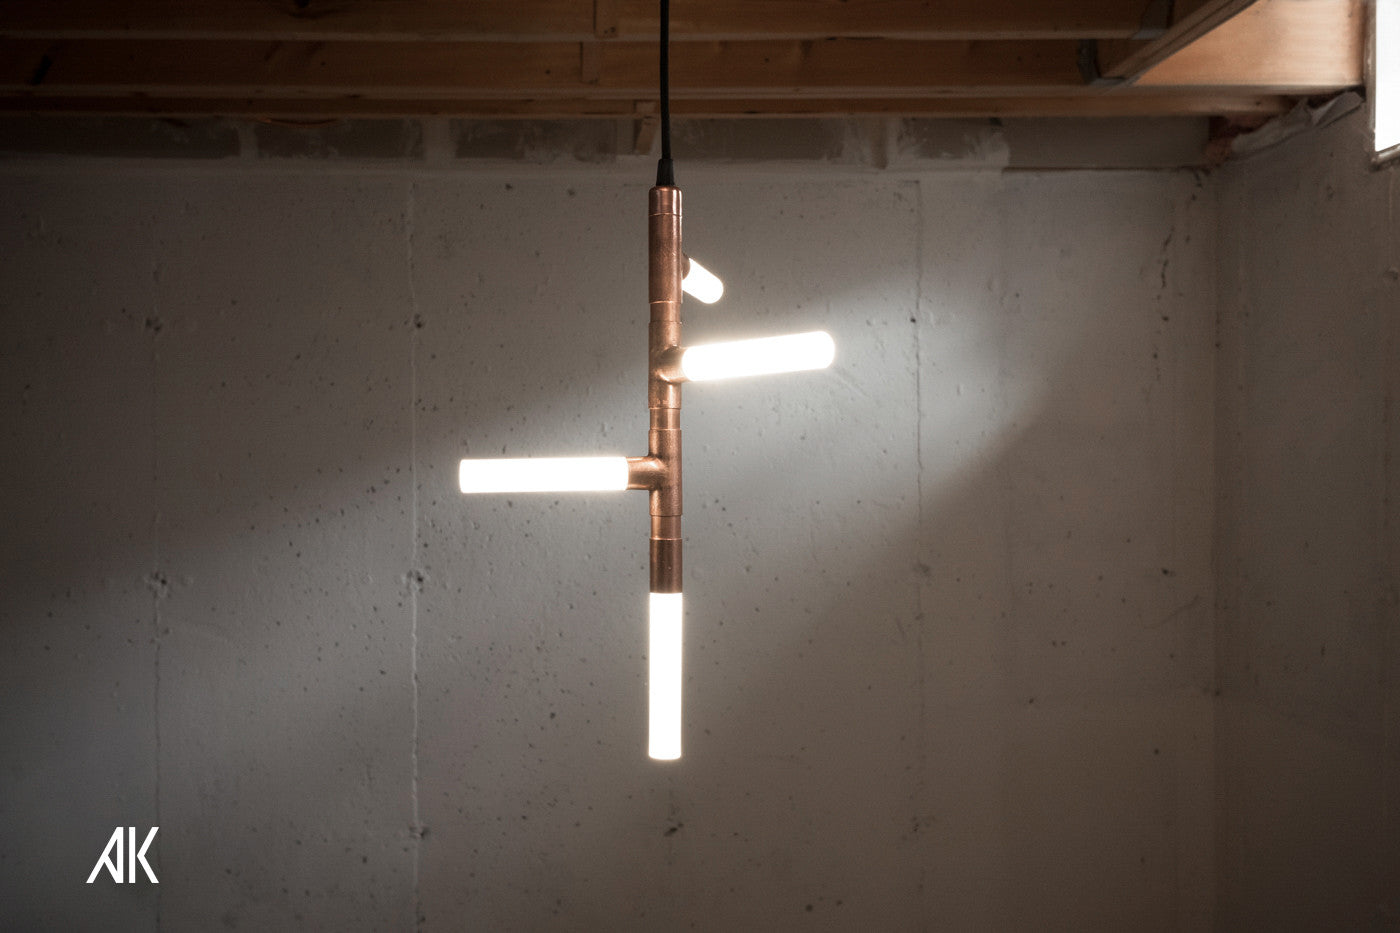 An abstract pendant light made with copper pipe, resembling tree branches.